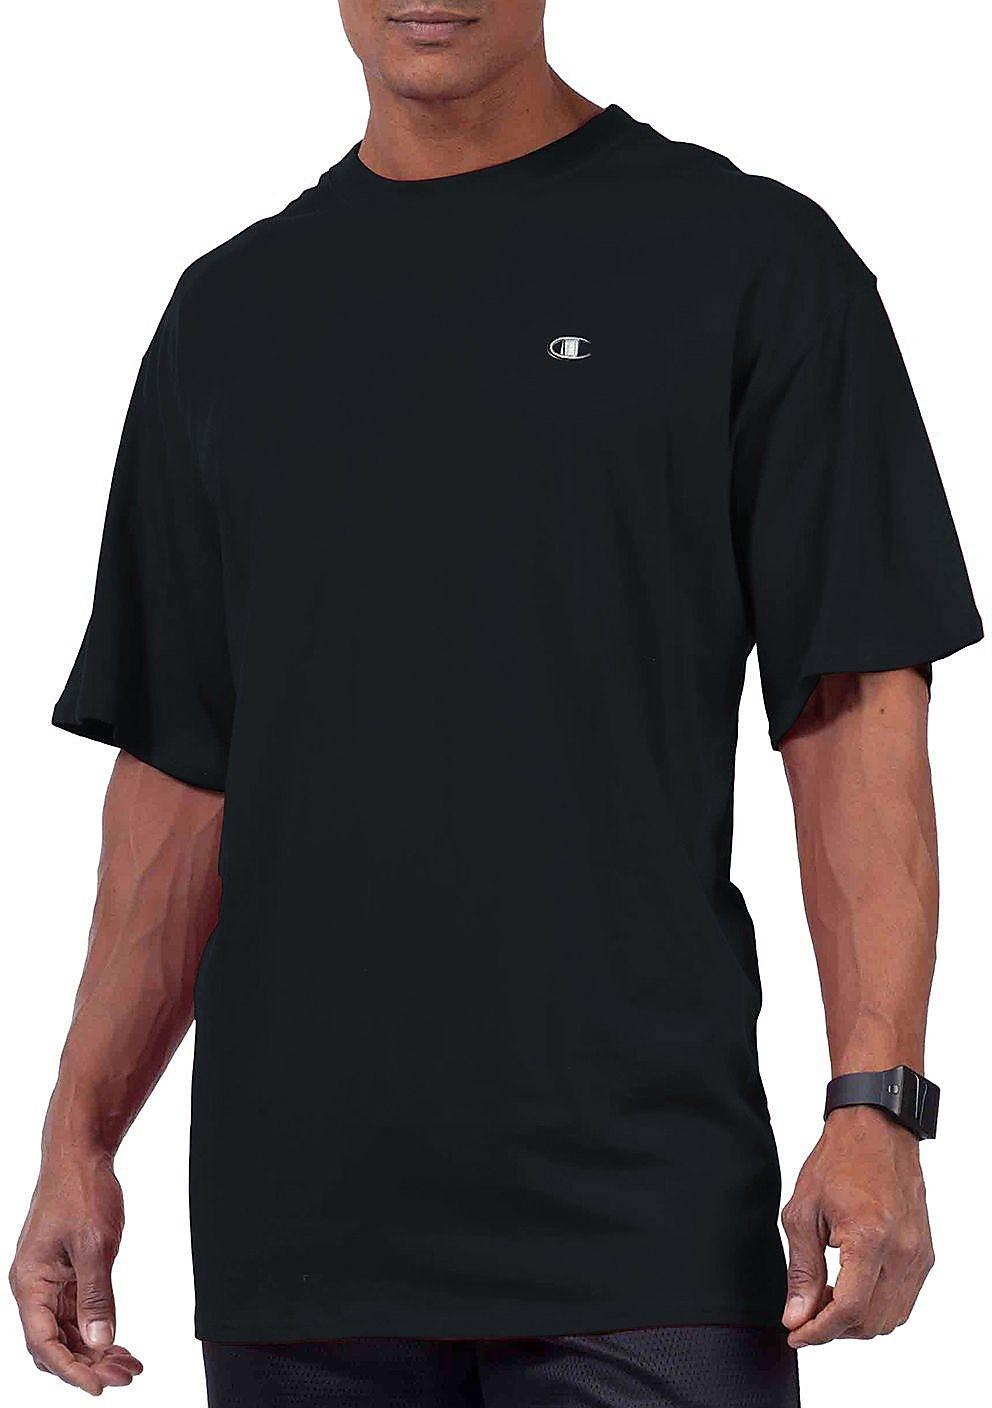 8ef7f861e Lyst - Champion Big & Tall Jersey T-shirt in Black for Men - Save 44.0%